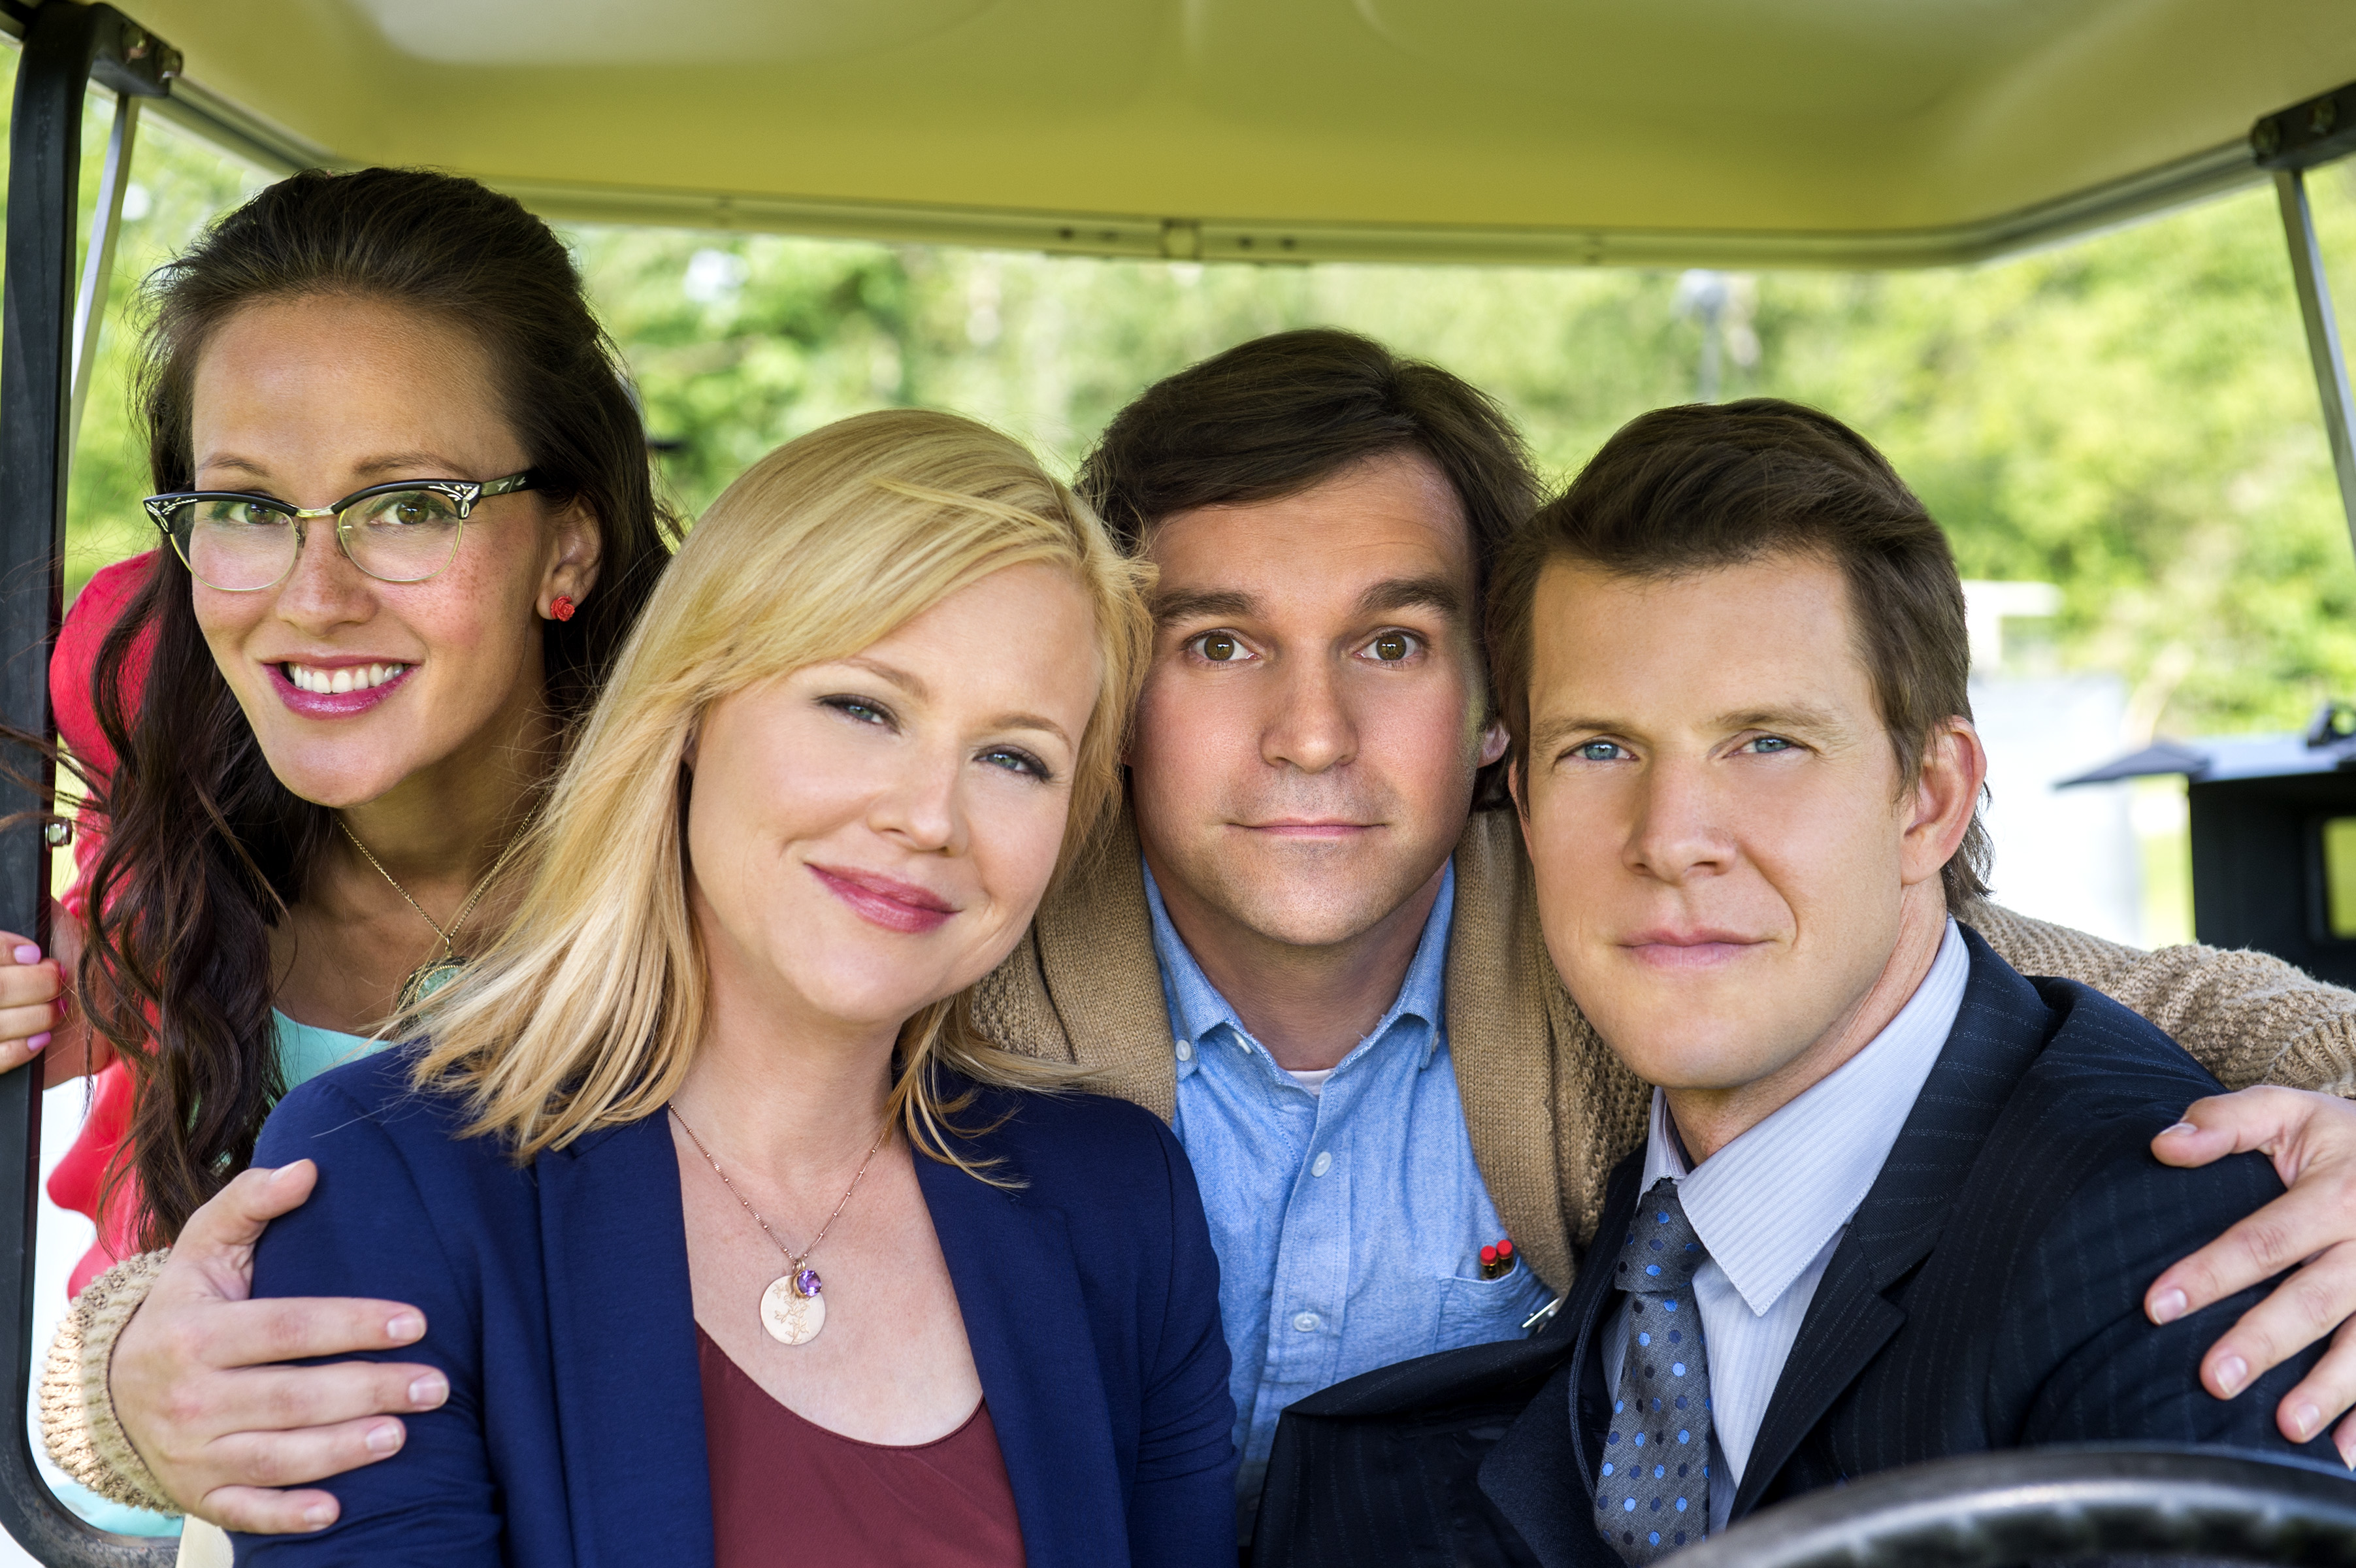 Crystal Lowe as Rita Haywith, Geoff Gustafson as Norman Dorman, Eric Mabius as Oliver O'Toole and Kristin Booth as Shane McInerney in Signed, Sealed, Delivered (2013)